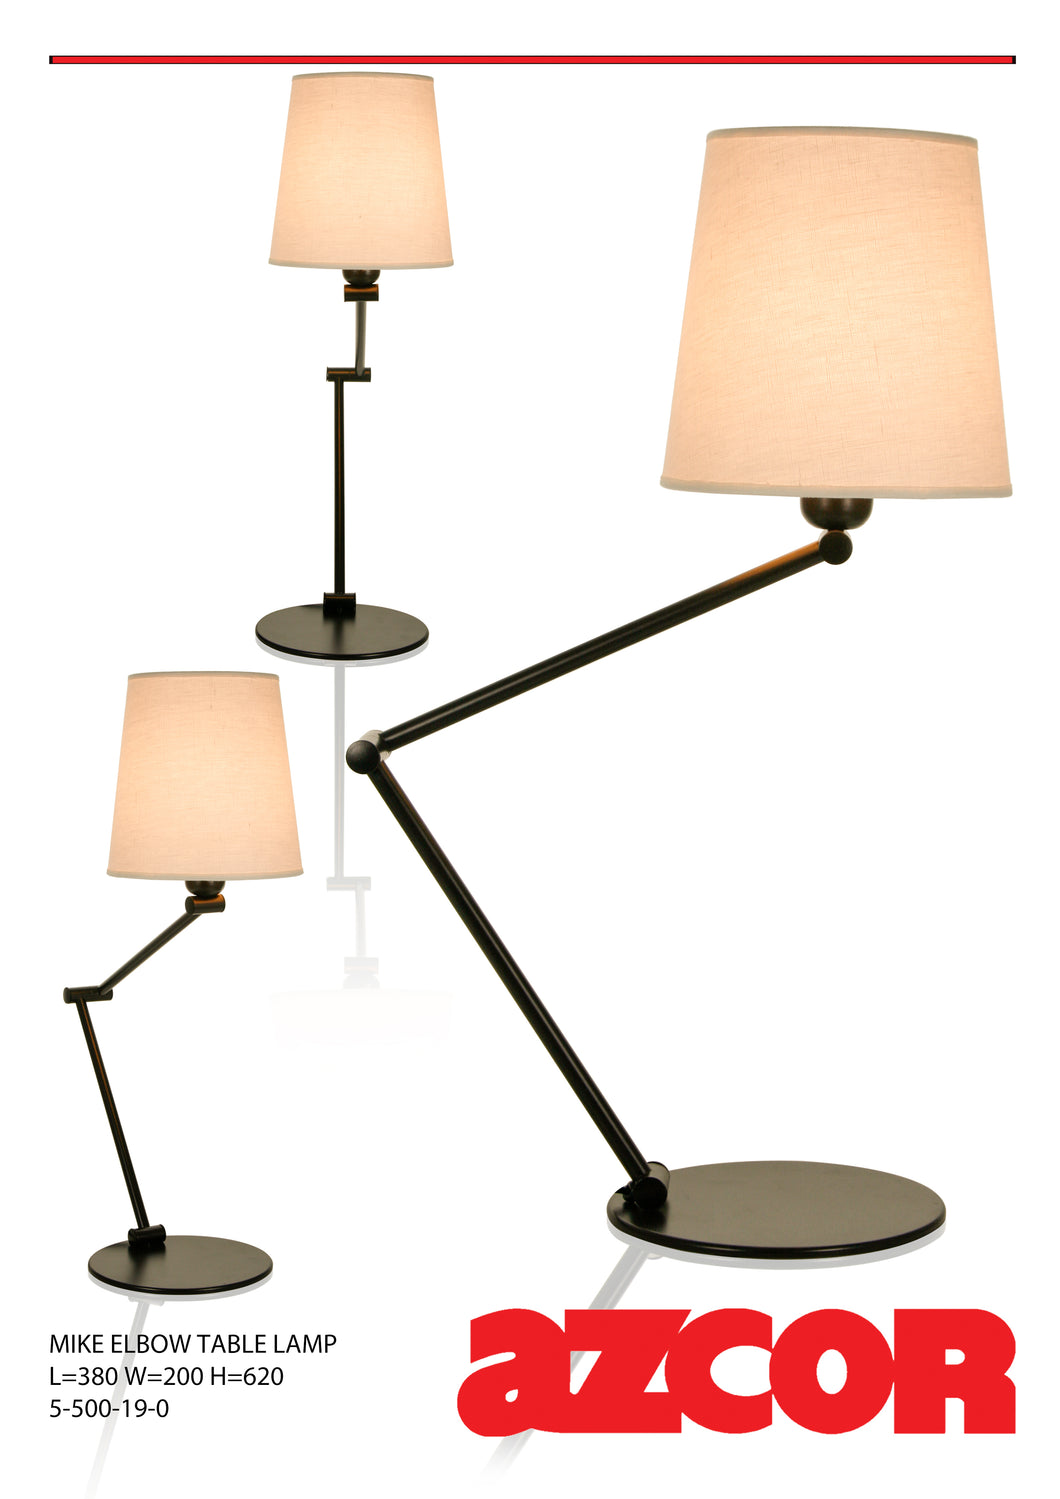 Mike Elbow Table Lamp